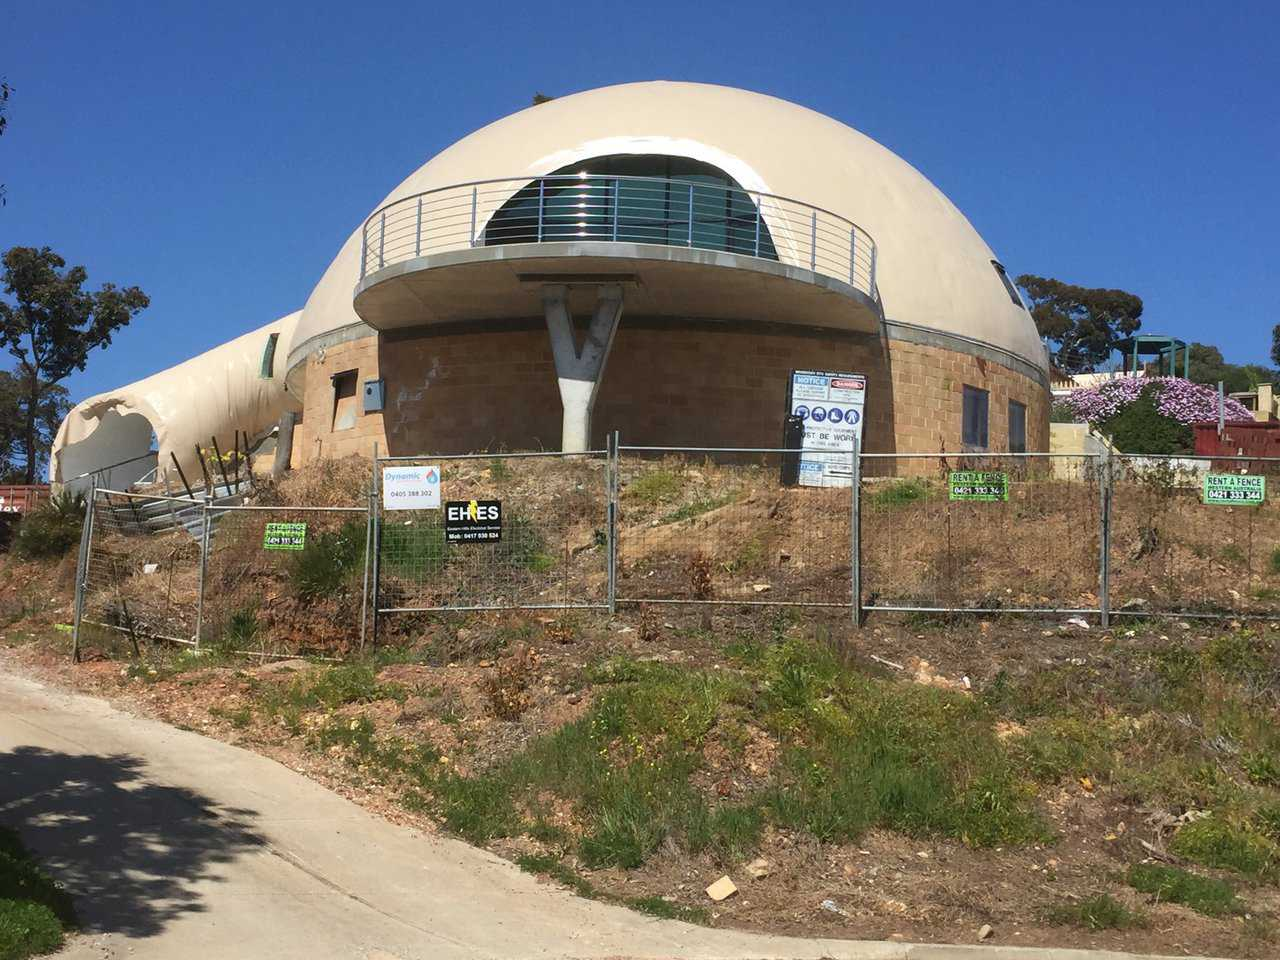 Australian Adventure Nears Completion Monolithic Dome